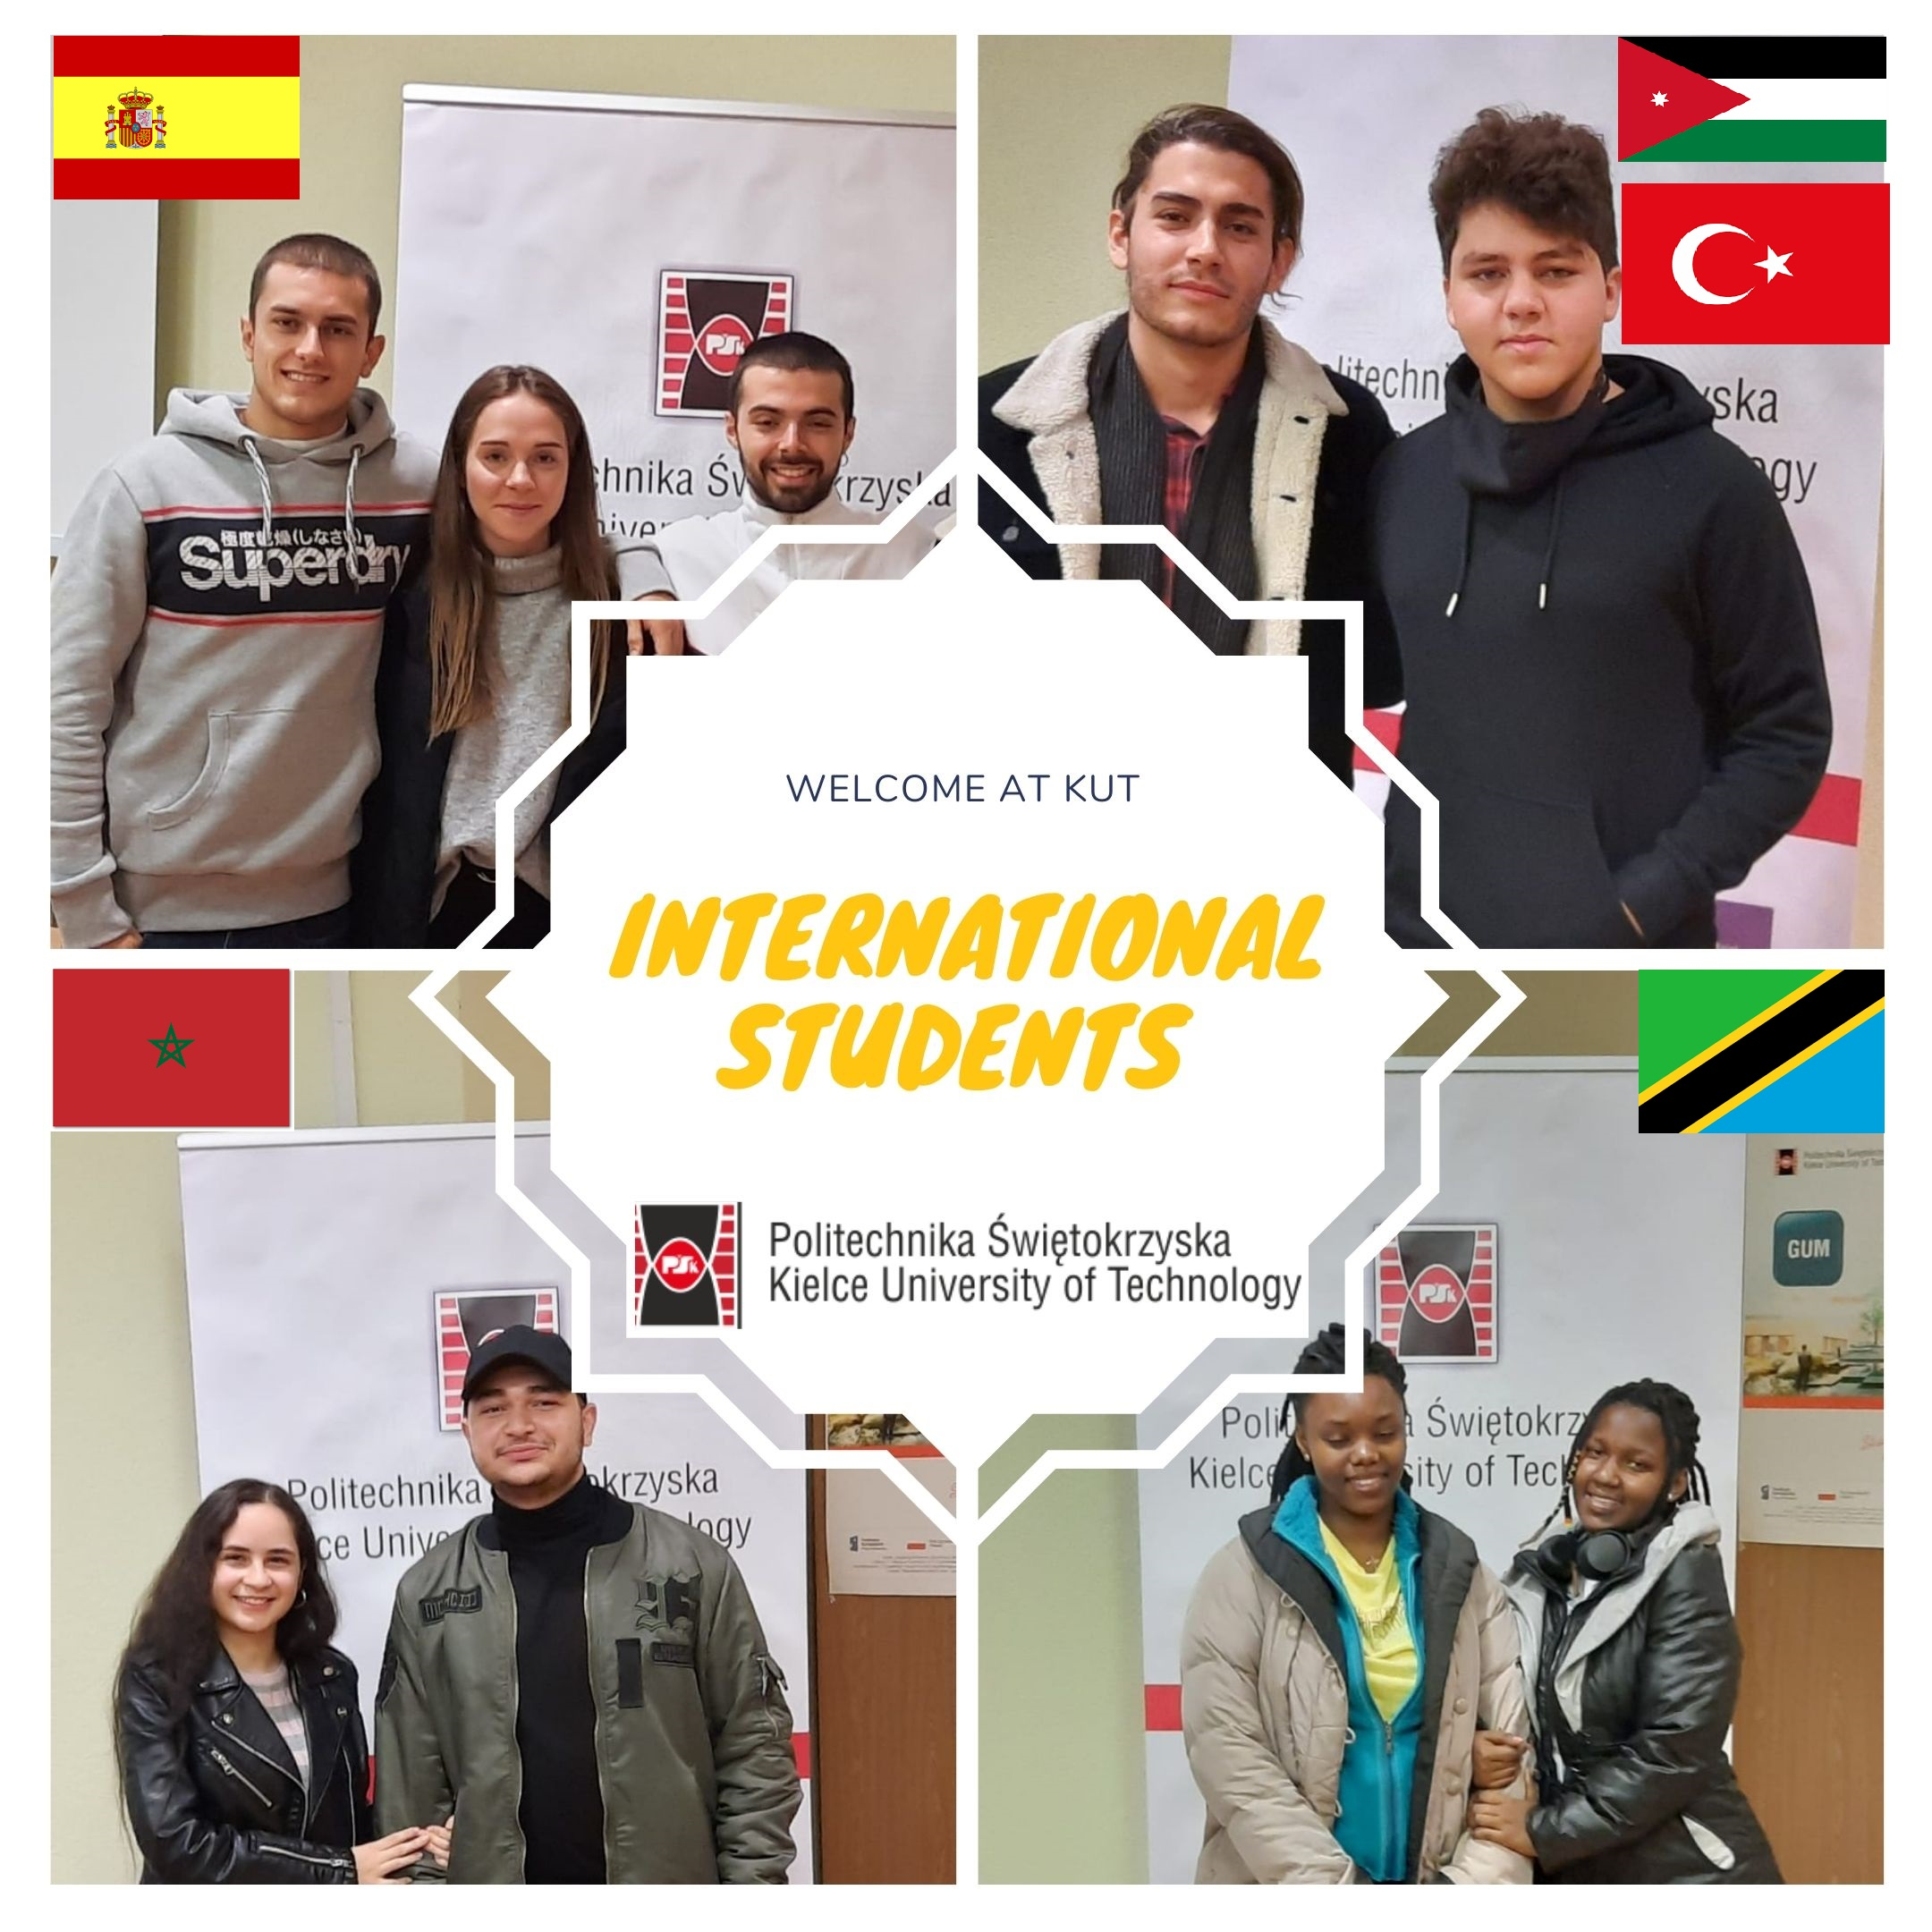 INTERNATIONAL STUDENTS AT THE KIELCE UNIVERSITY OF TECHNOLOGY – WELCOME!!!